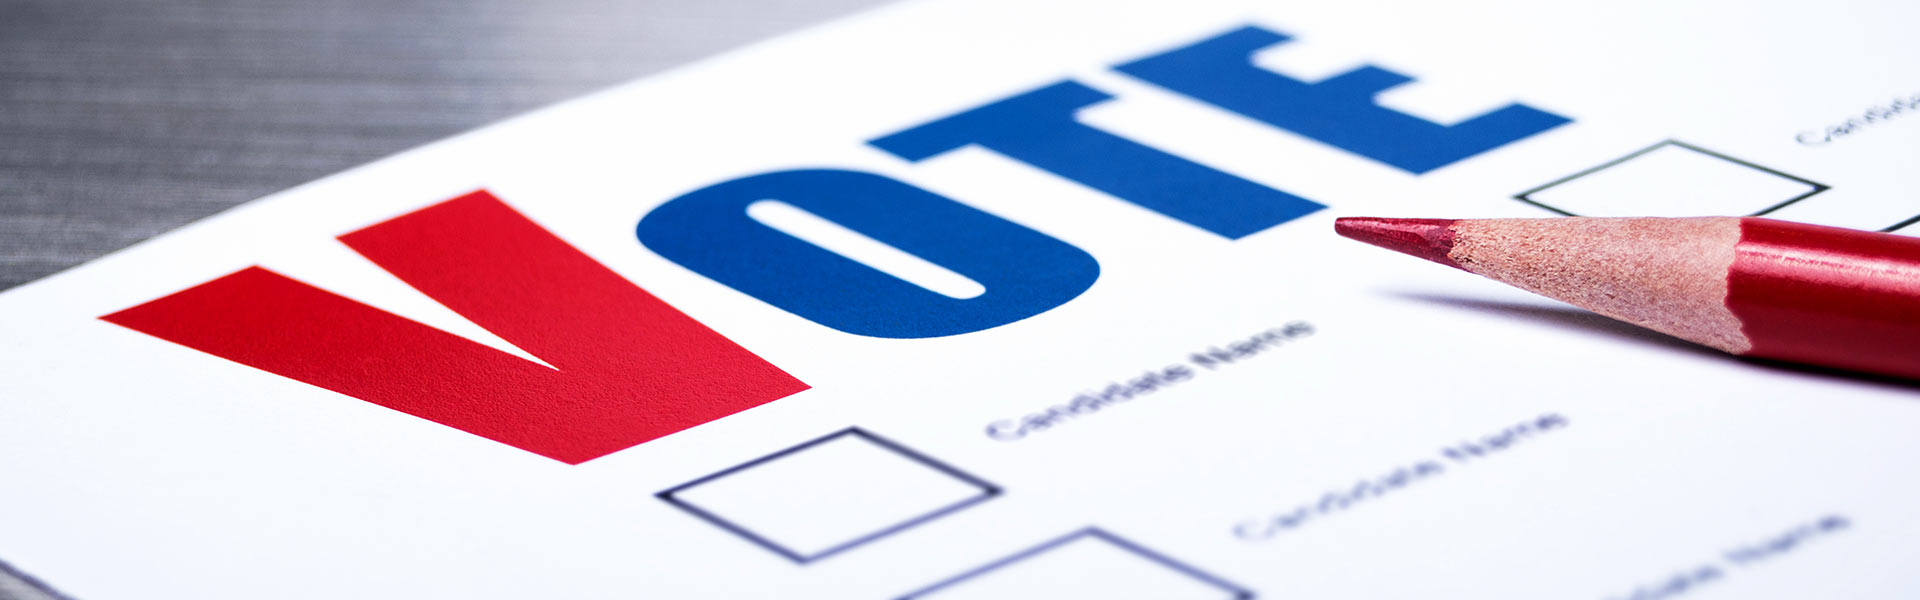 A close up of a ballot